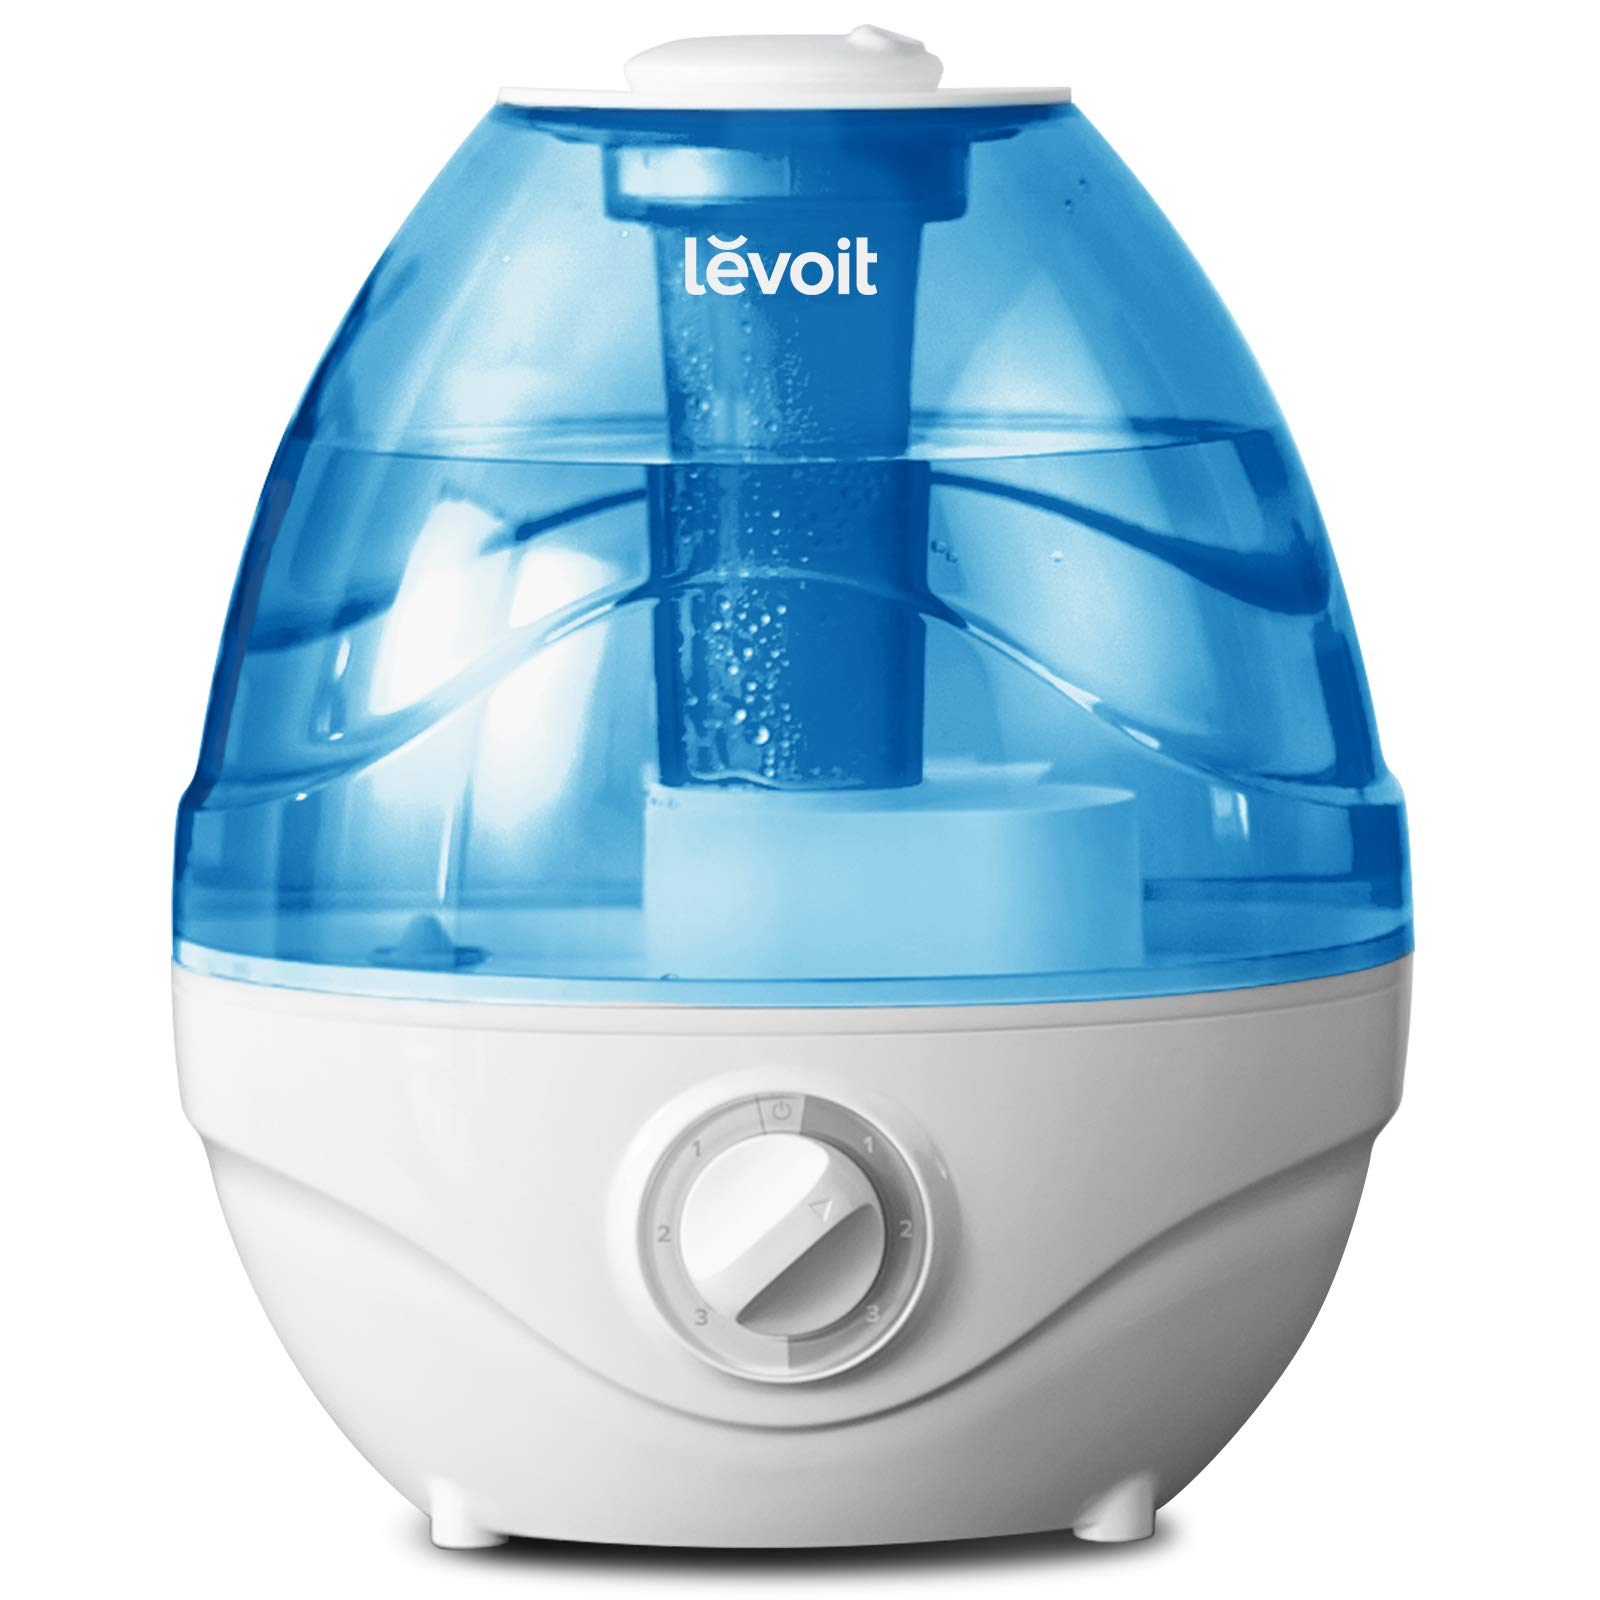 Levoit 2400ml Humidifiers For Bedroom Ultrasonic Cool Mist Humidifier For Baby Bpa Free 24 Working Hours Night Light Waterless Auto Off 24db Quiet Air Humidifier For Home Babyroom Living Room Buy Online In